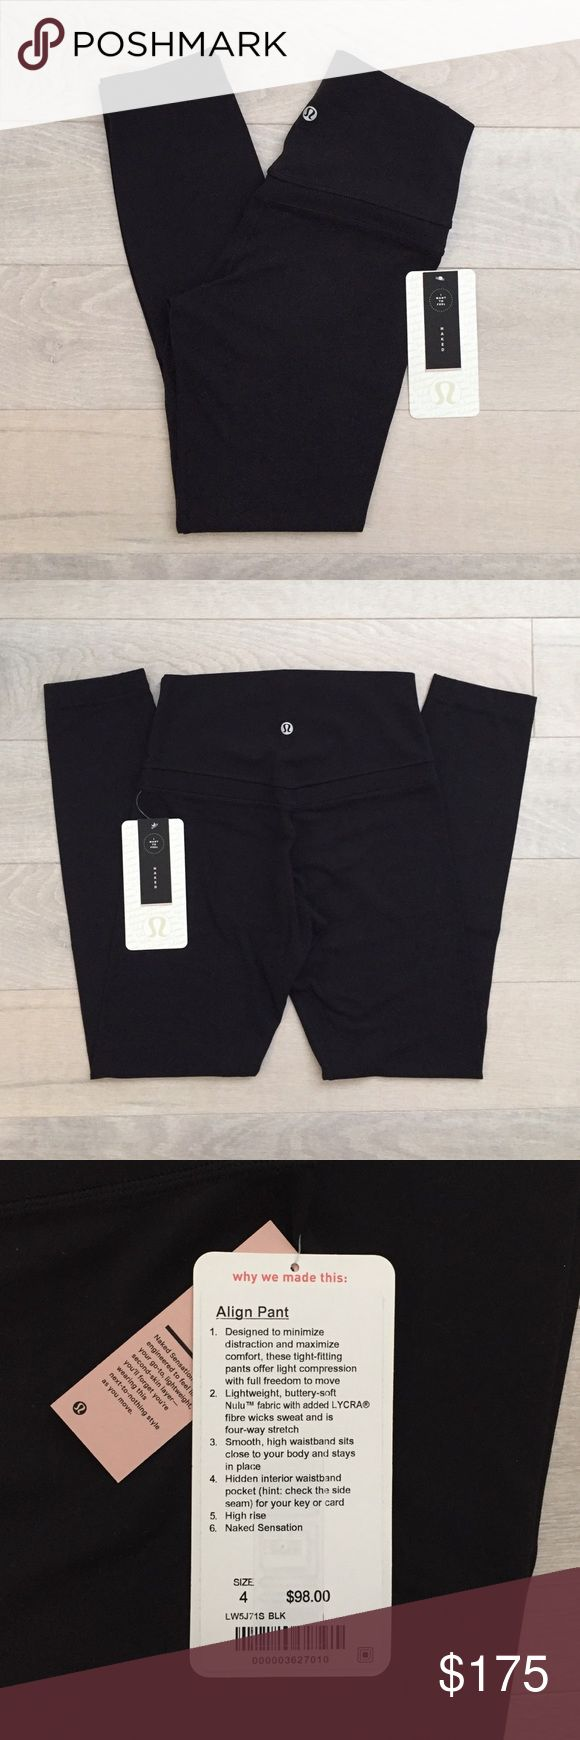 (nwt) lululemon Align Pant (original) (nwt) lululemon Align Pant (original) in black, size 4. The original style is sold out and selling for $$$ on other resale sites. Listing high as I've already been offered several high offers.  If you don't like my price, the Align Pant II is a newer style in-stock online for $98. Please don't leave rude comments on this post, thank you!  •Smoke-free + pet-free home •Items shipped within 1-2 days •NO trades or other forms of payment lululemon athletica…